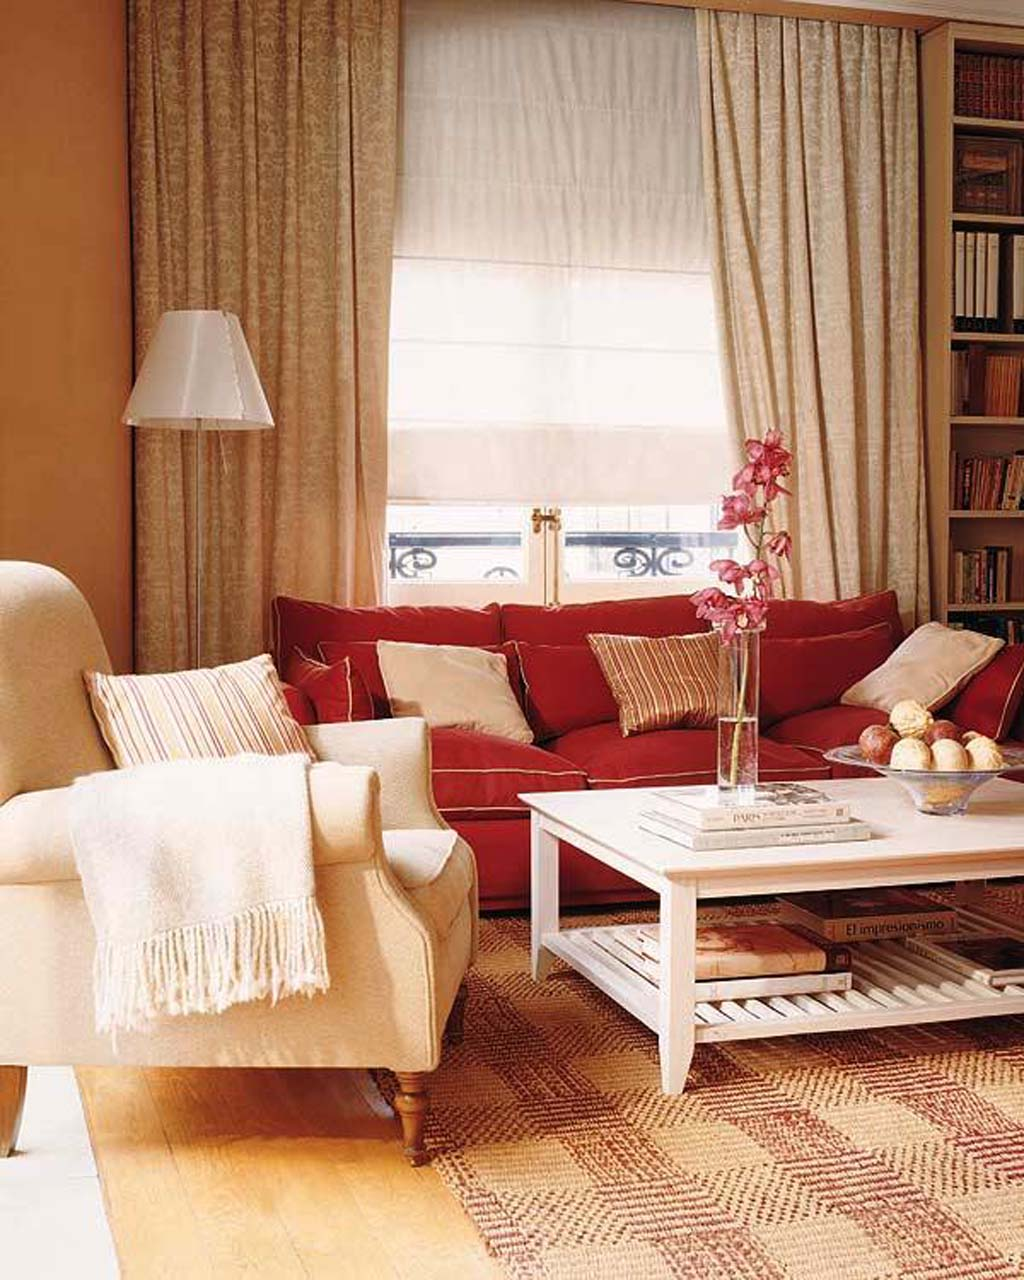 30 Small Living Room Decorating Ideas: 30 Amazing Small Spaces Living Room Design Ideas